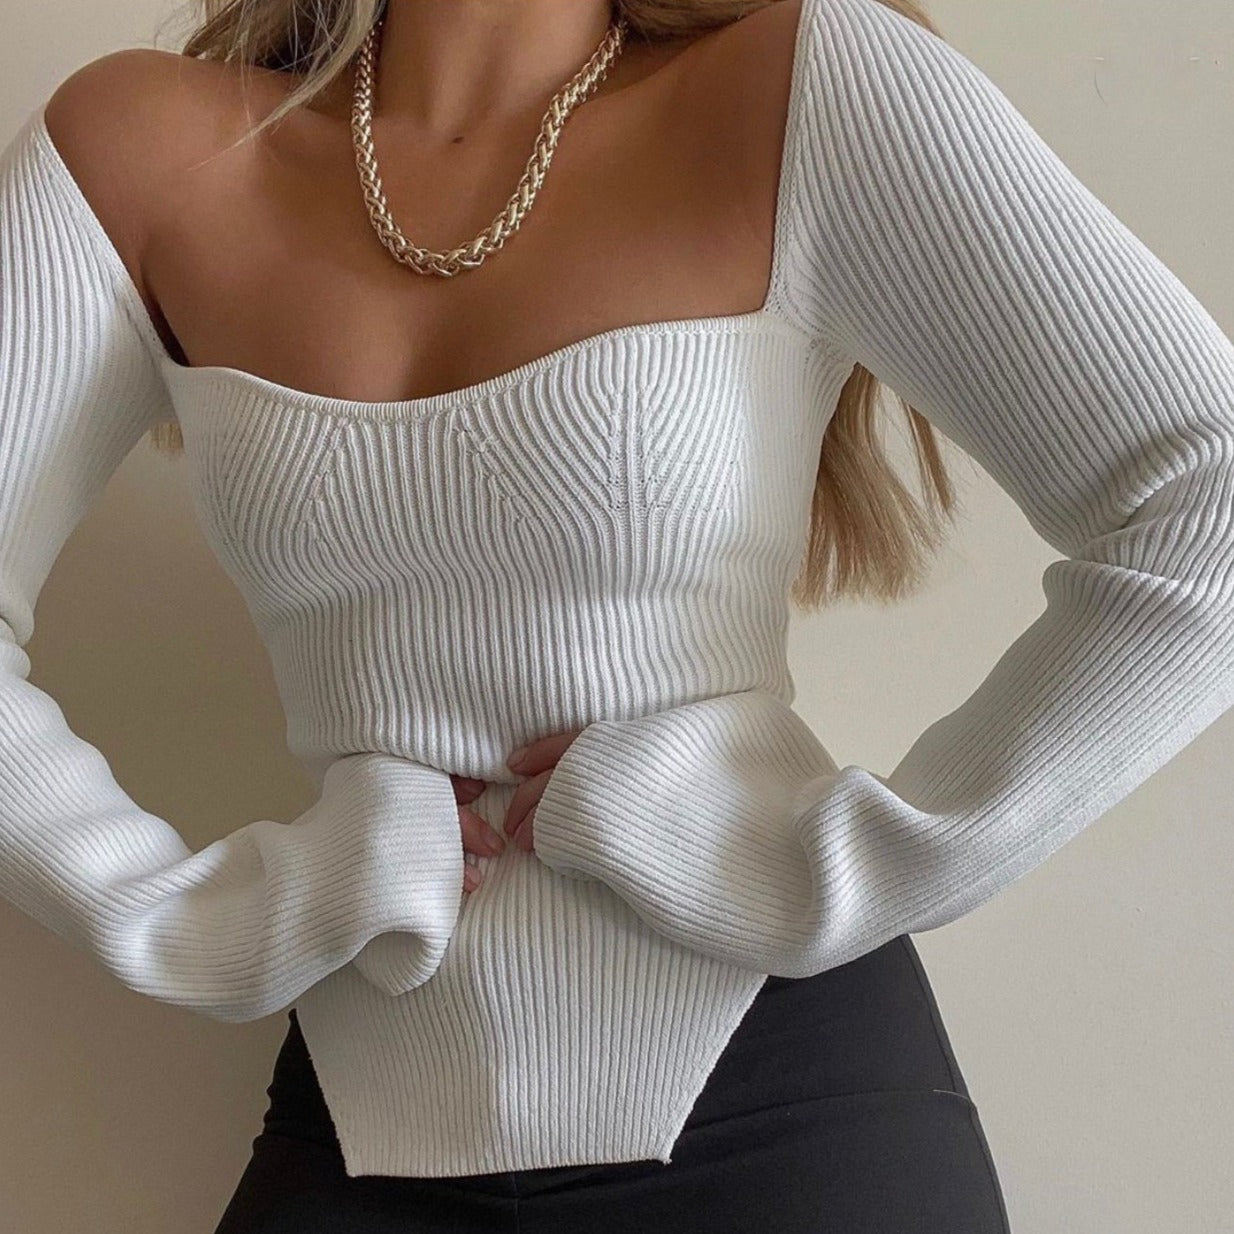 Long Sleeve Sweetheart Knit Top Long Sleeve Sweetheart Knit Top - Soo FluffyCLOTHING & ACCESSORIES Soo Fluffy